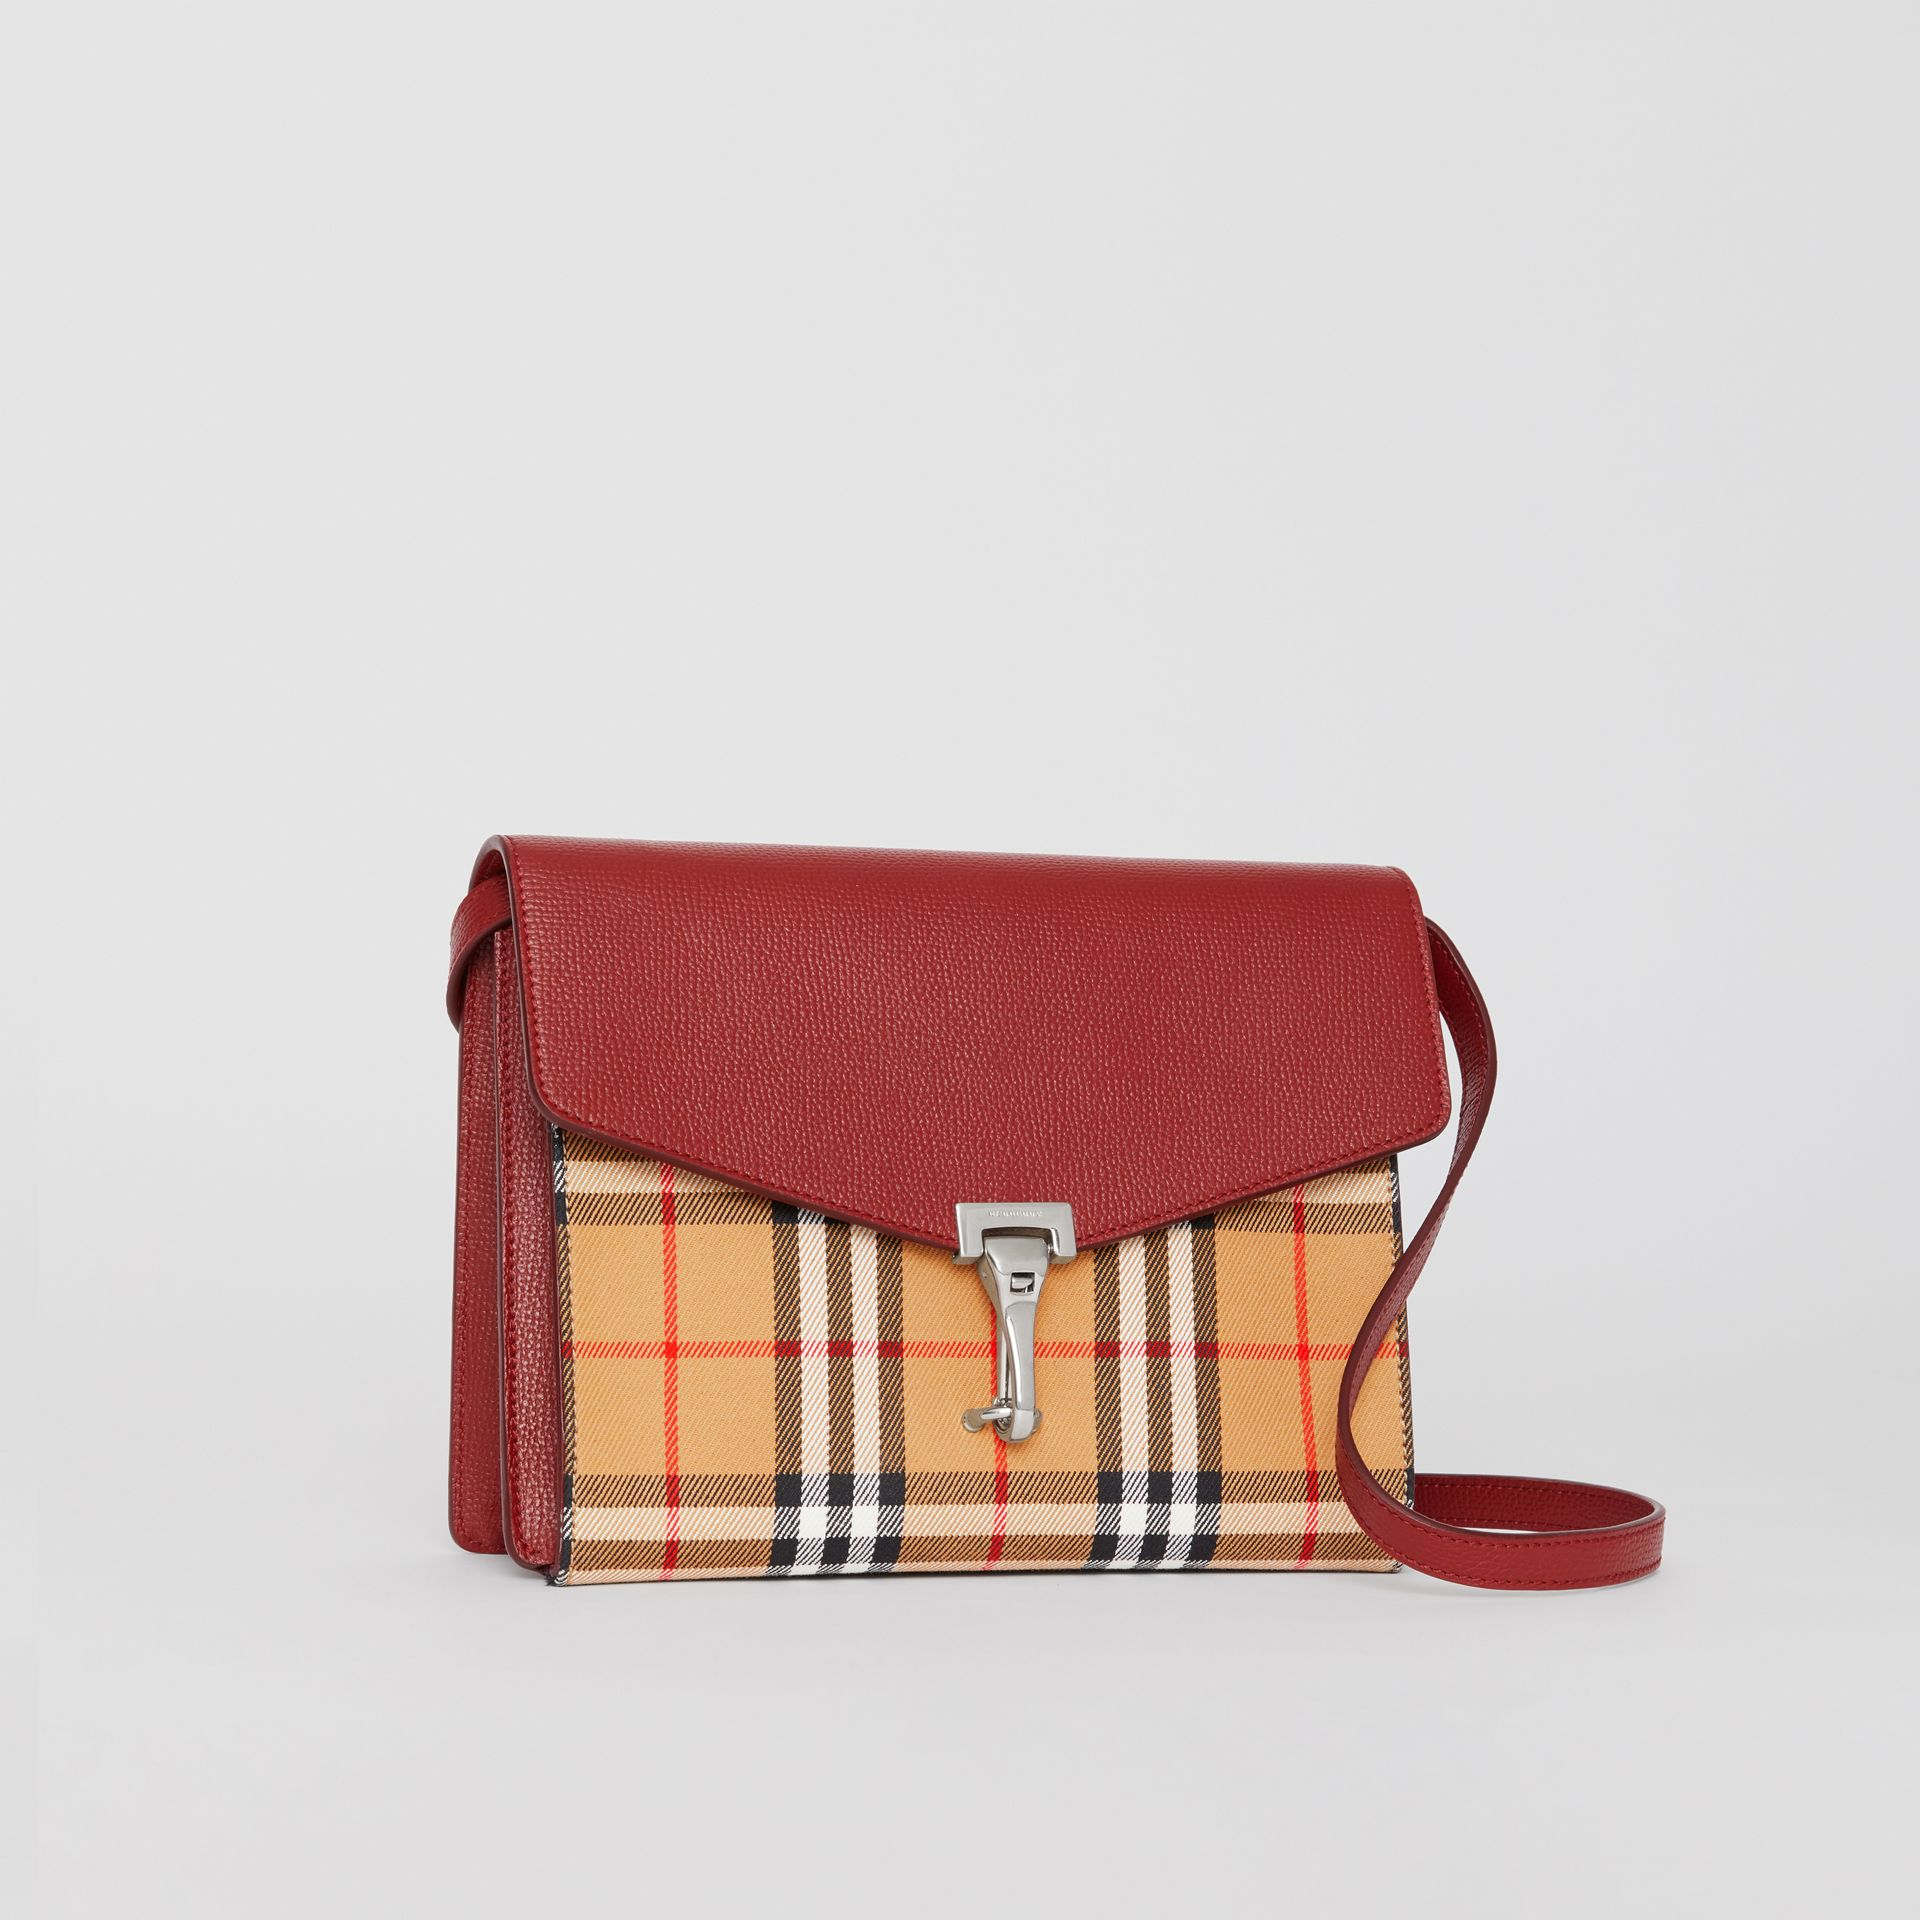 Small Vintage Check and Leather Crossbody Bag in Crimson - Women | Burberry United Kingdom - gallery image 6